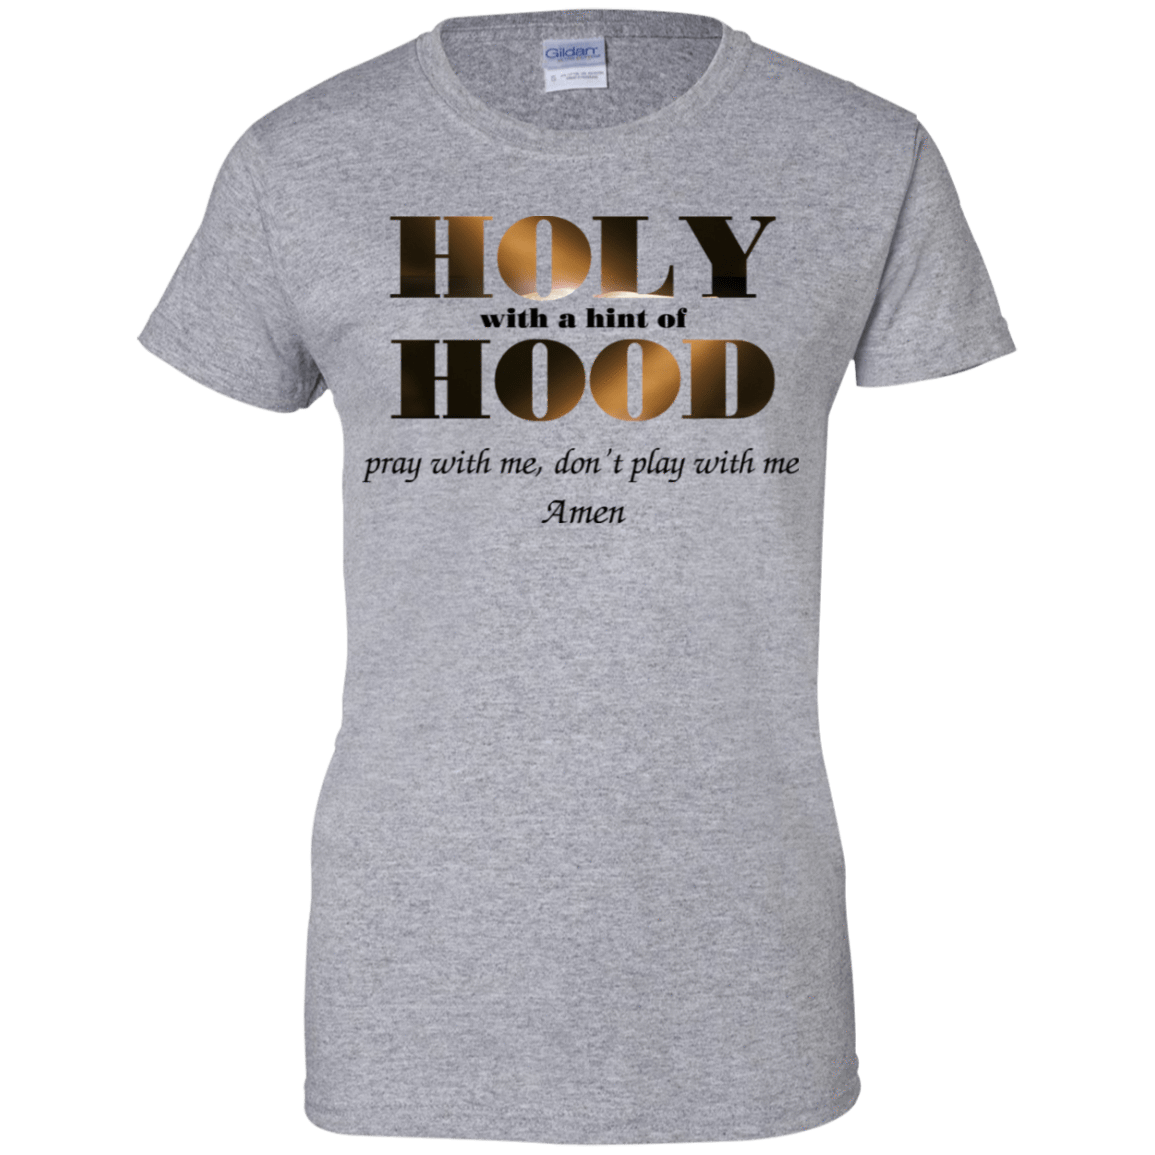 Holy With A Hint Of Hood Pray With Me Don't Play With Me Amen T-Shirts, Hoodie, Tank 939-9265-77675278-44821 - Tee Ript